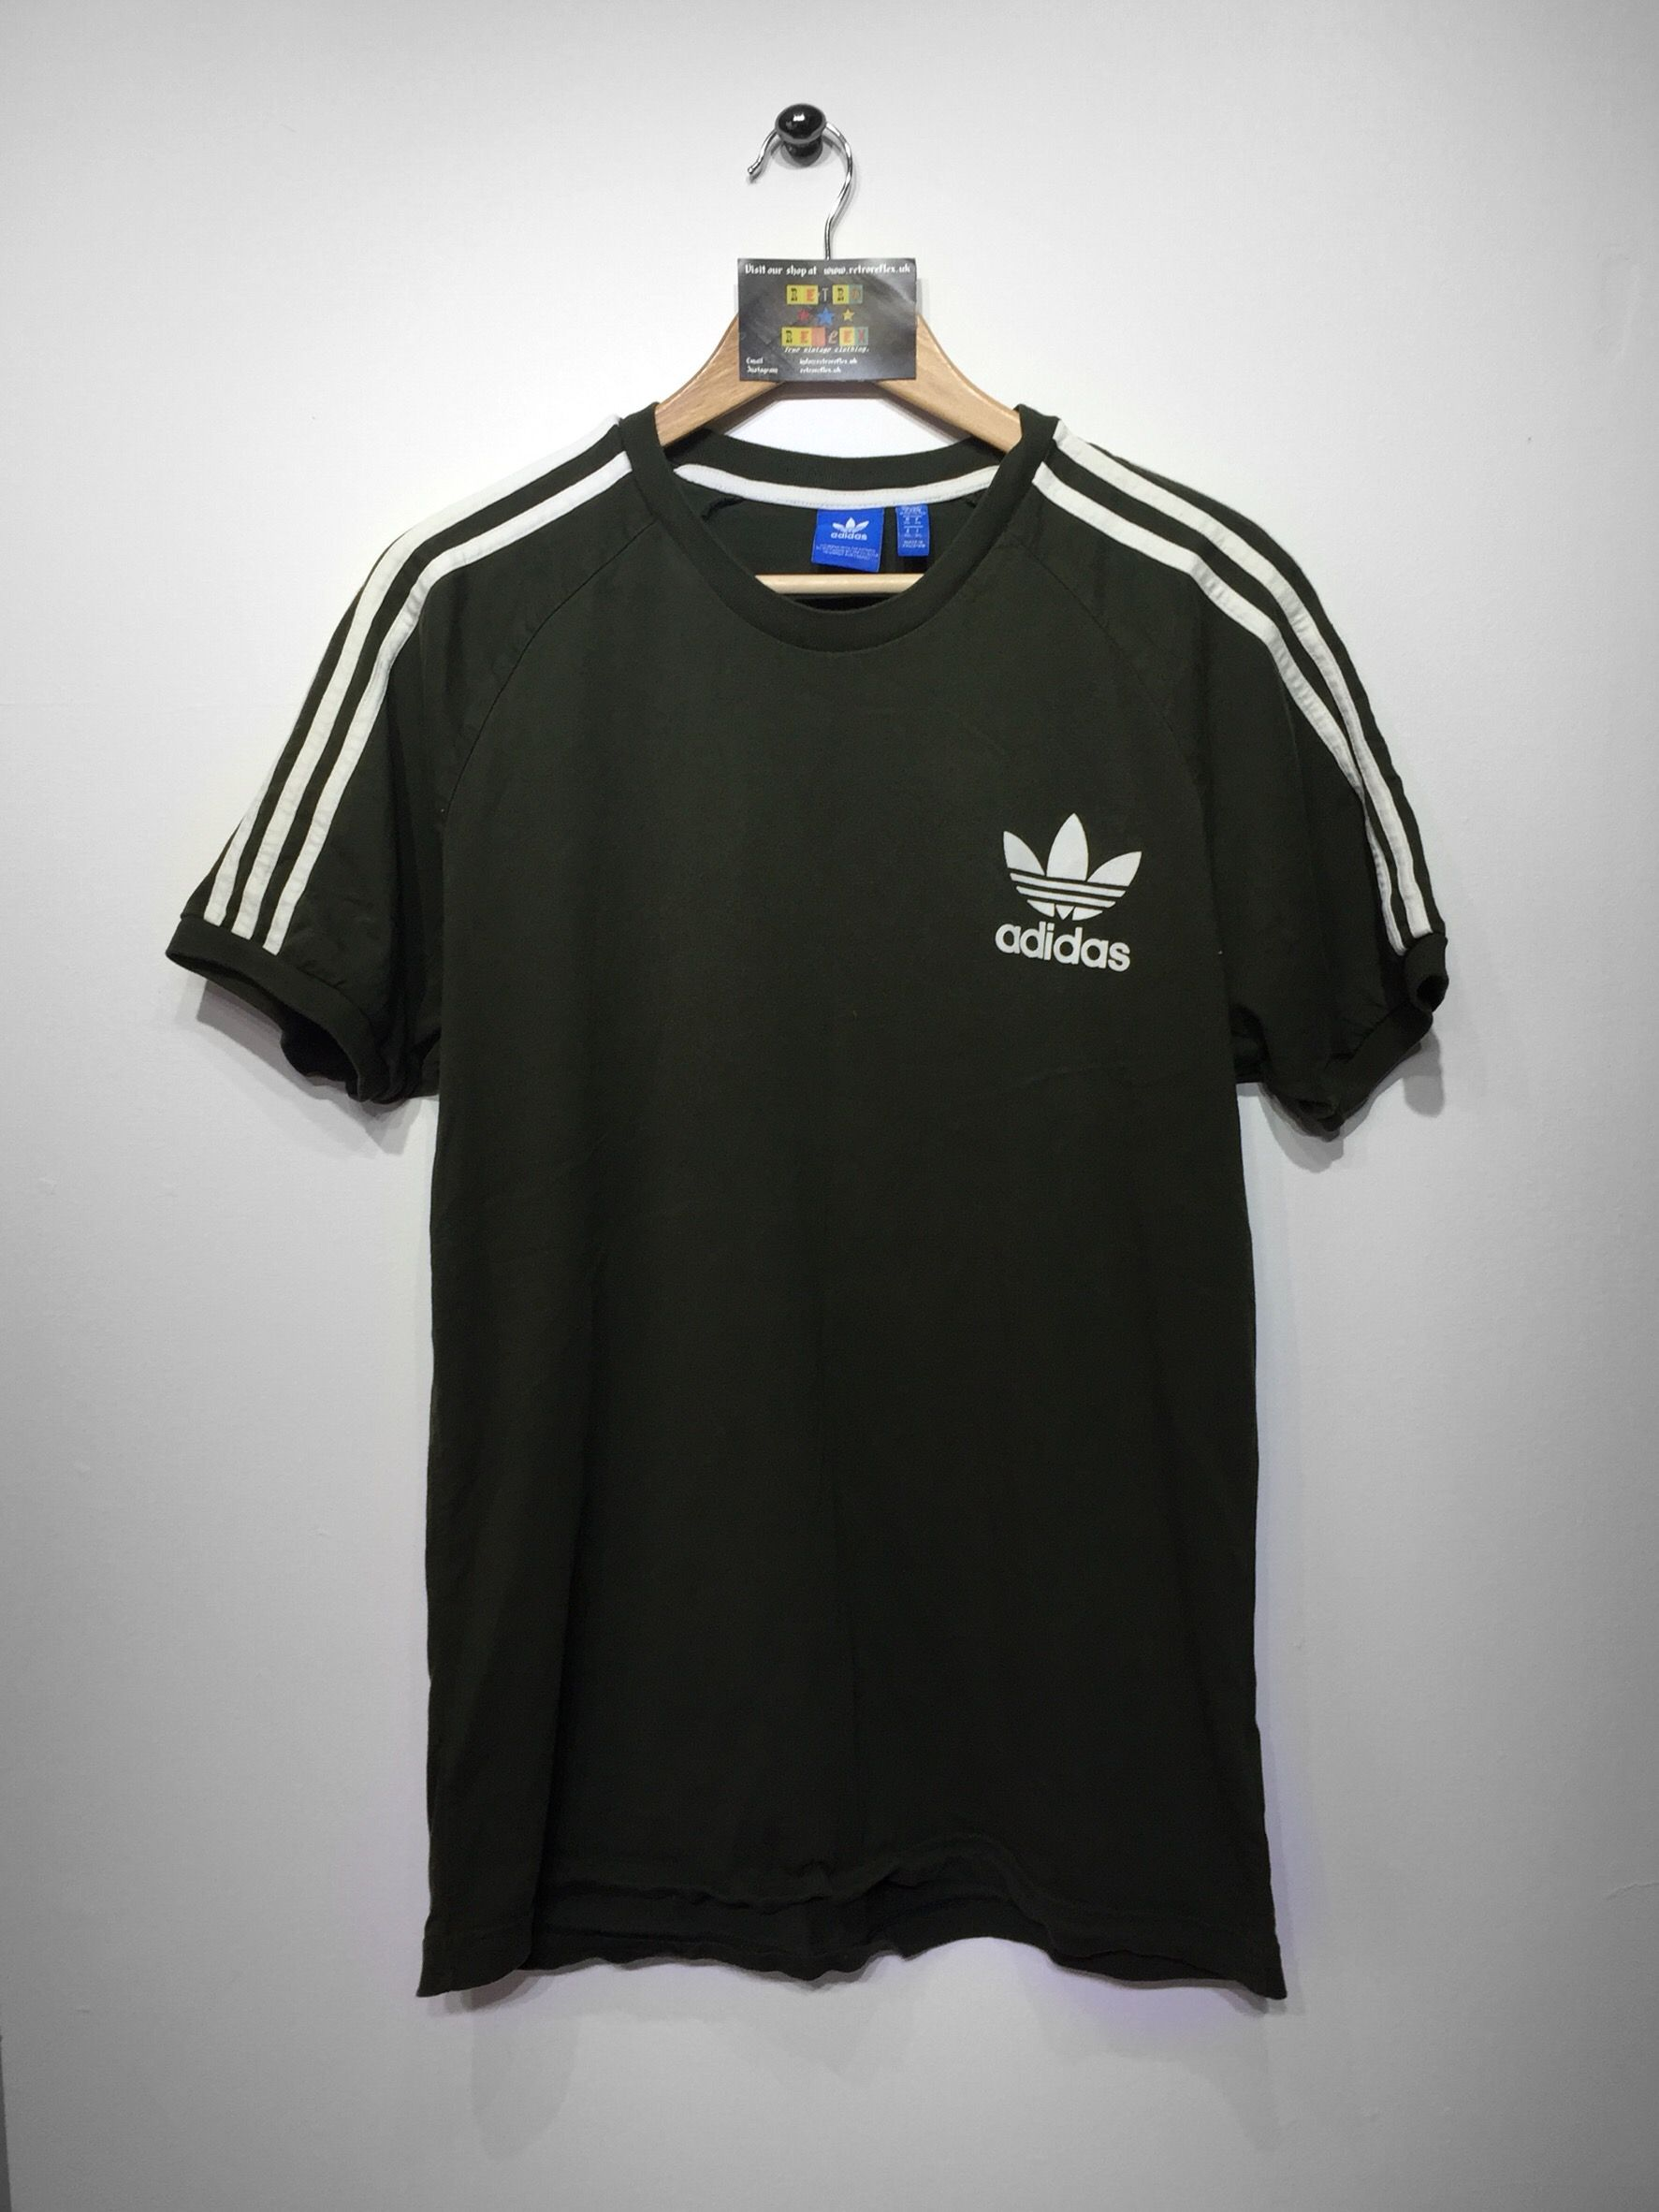 aac8a1732 Adidas T-Shirt Size X Large £16 Website➡ www.retroreflex.uk ...